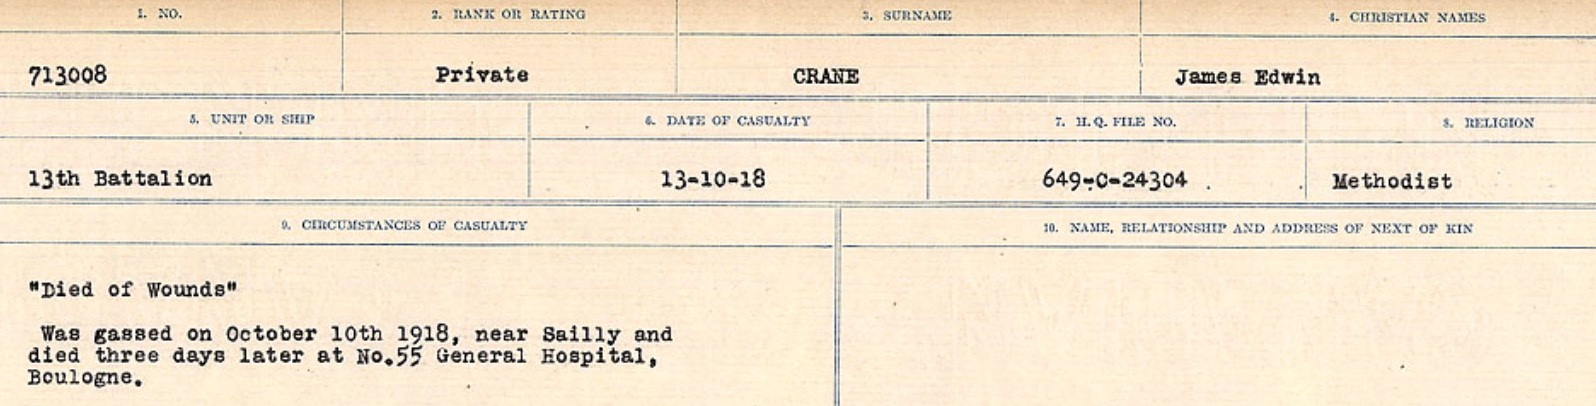 Circumstances of death registers– Source: Library and Archives Canada. CIRCUMSTANCES OF DEATH REGISTERS, FIRST WORLD WAR Surnames: CRABB TO CROSSLAND Microform Sequence 24; Volume Number 31829_B016733. Reference RG150, 1992-93/314, 168. Page 223 of 788.